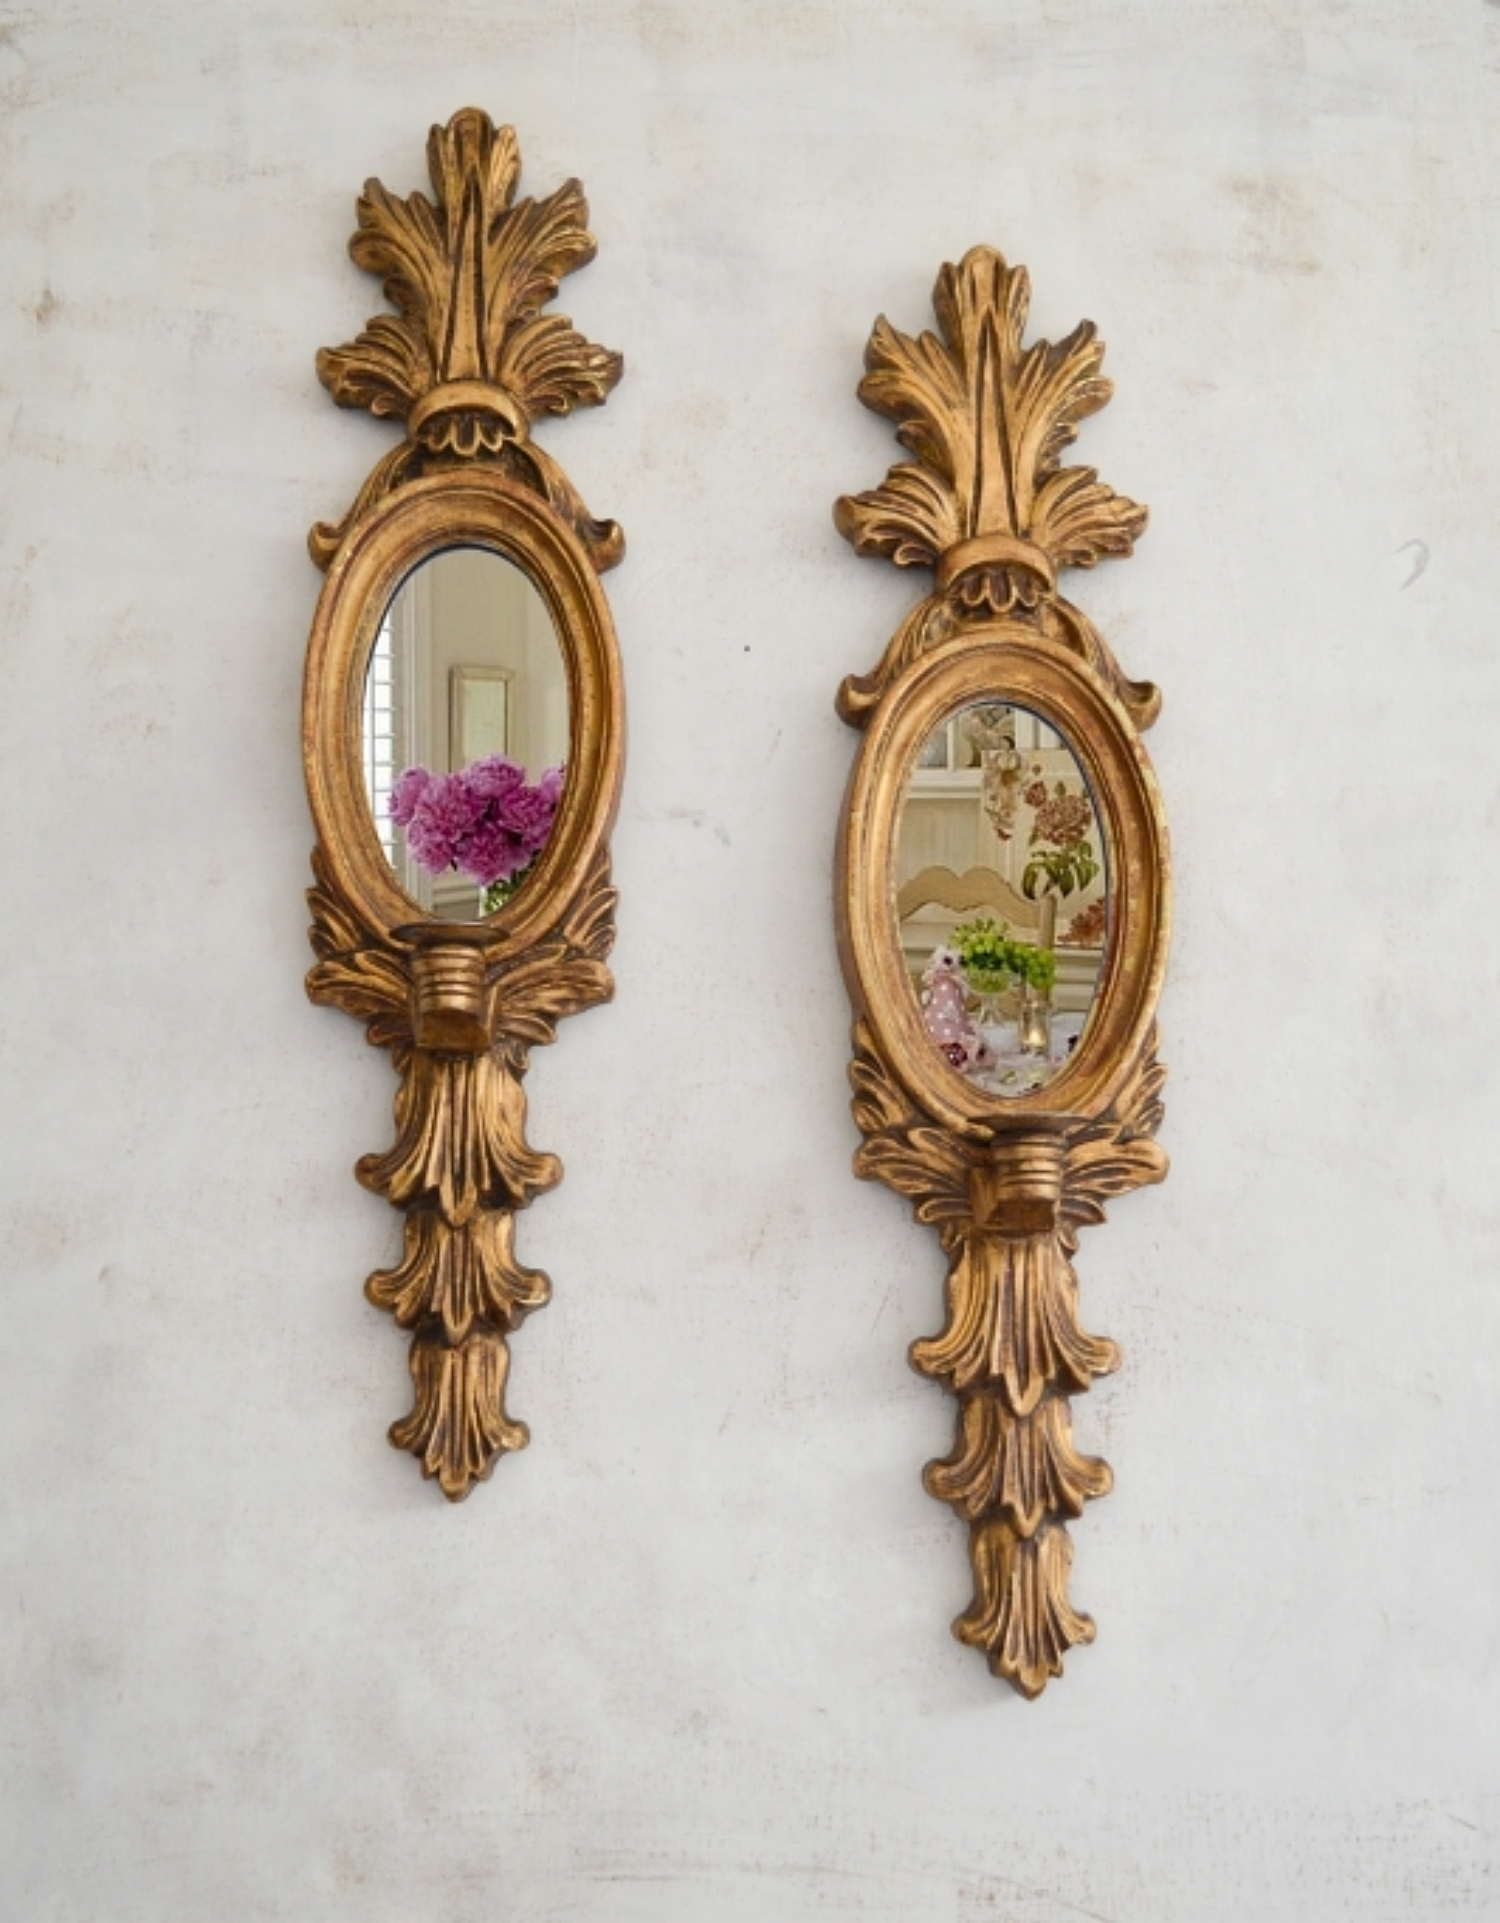 Large French Pair Mirror Candle Candelabra Wall Sconces Antique Brocante Wall Scone Wall Candle Holder Ornate Shabby Chic Light Vinterior